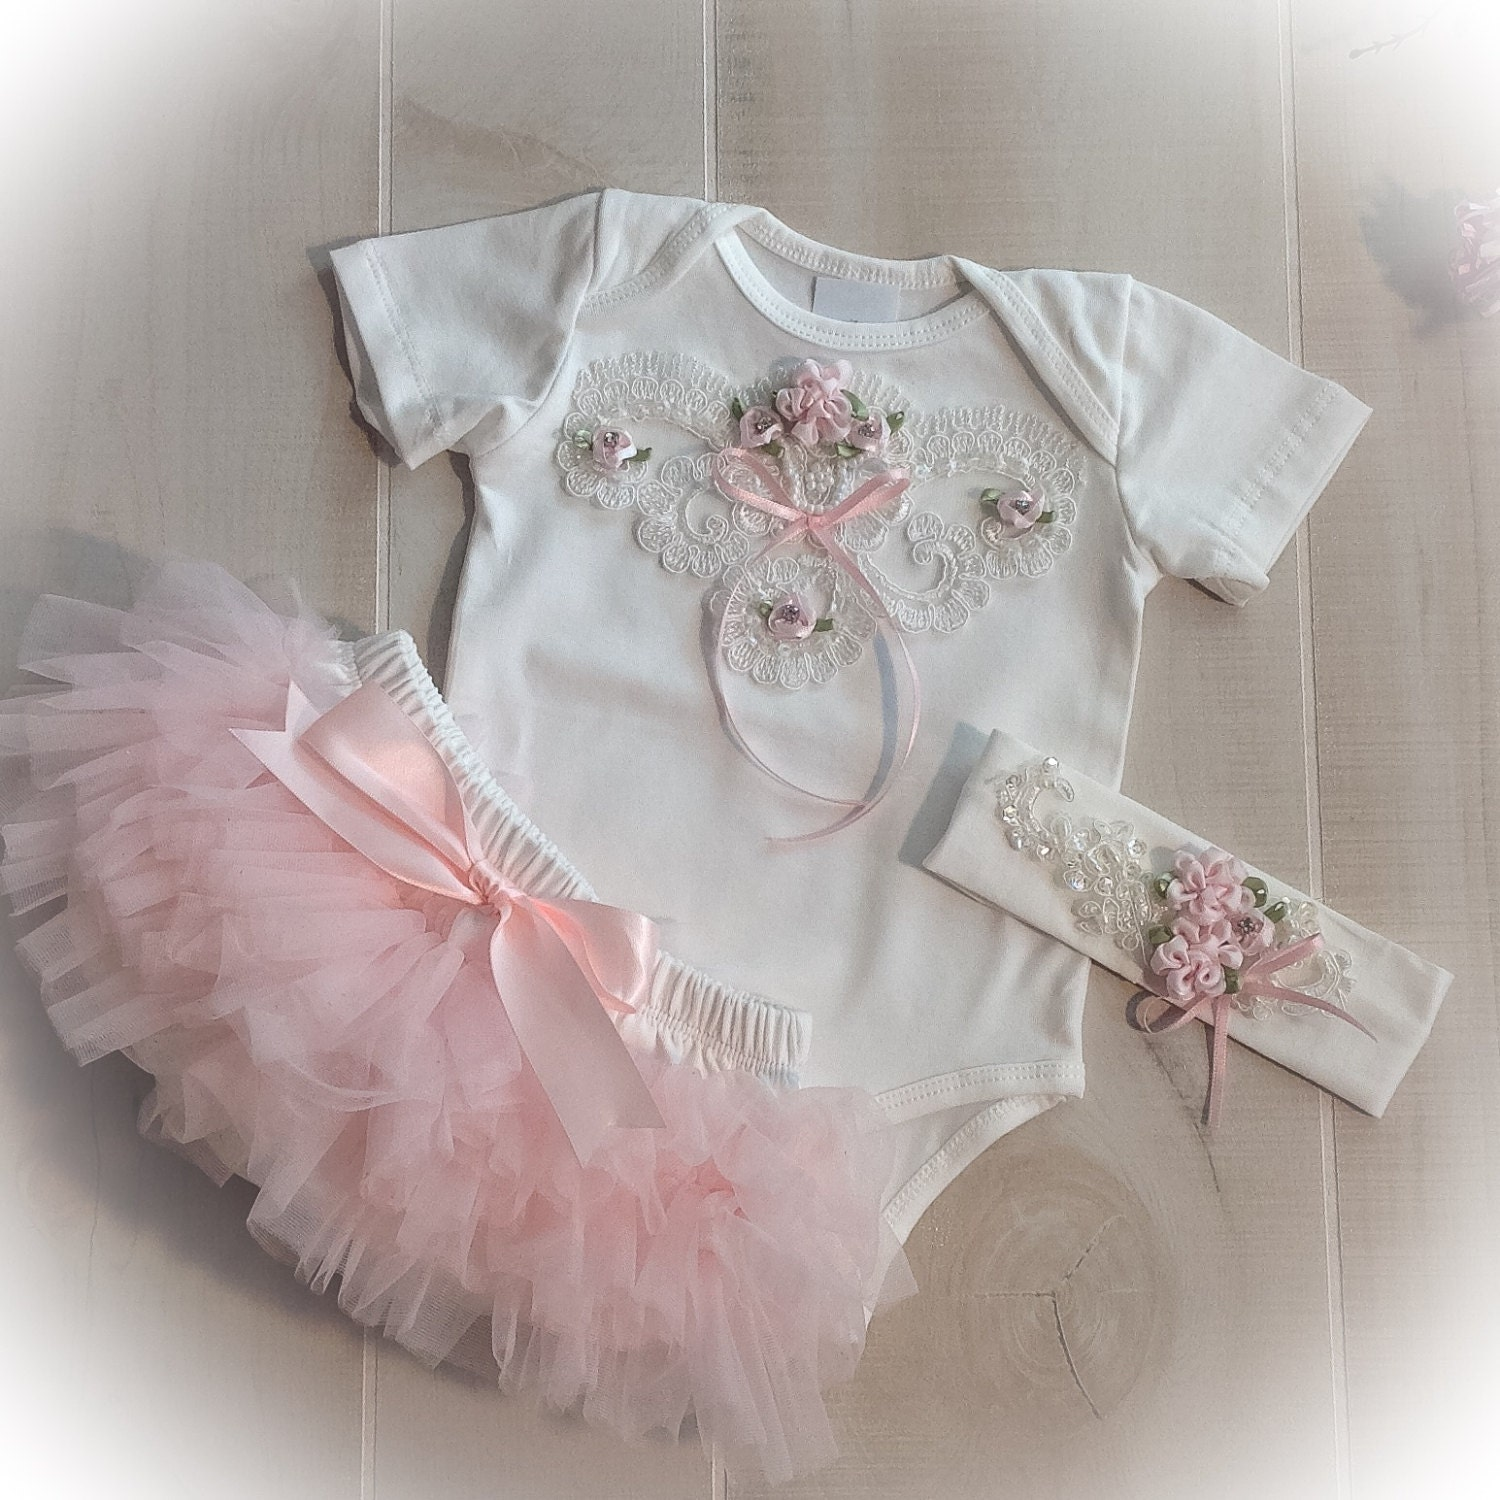 Baby Girl Tutu Outfit Newborn Girl Outfit Diaper Cover